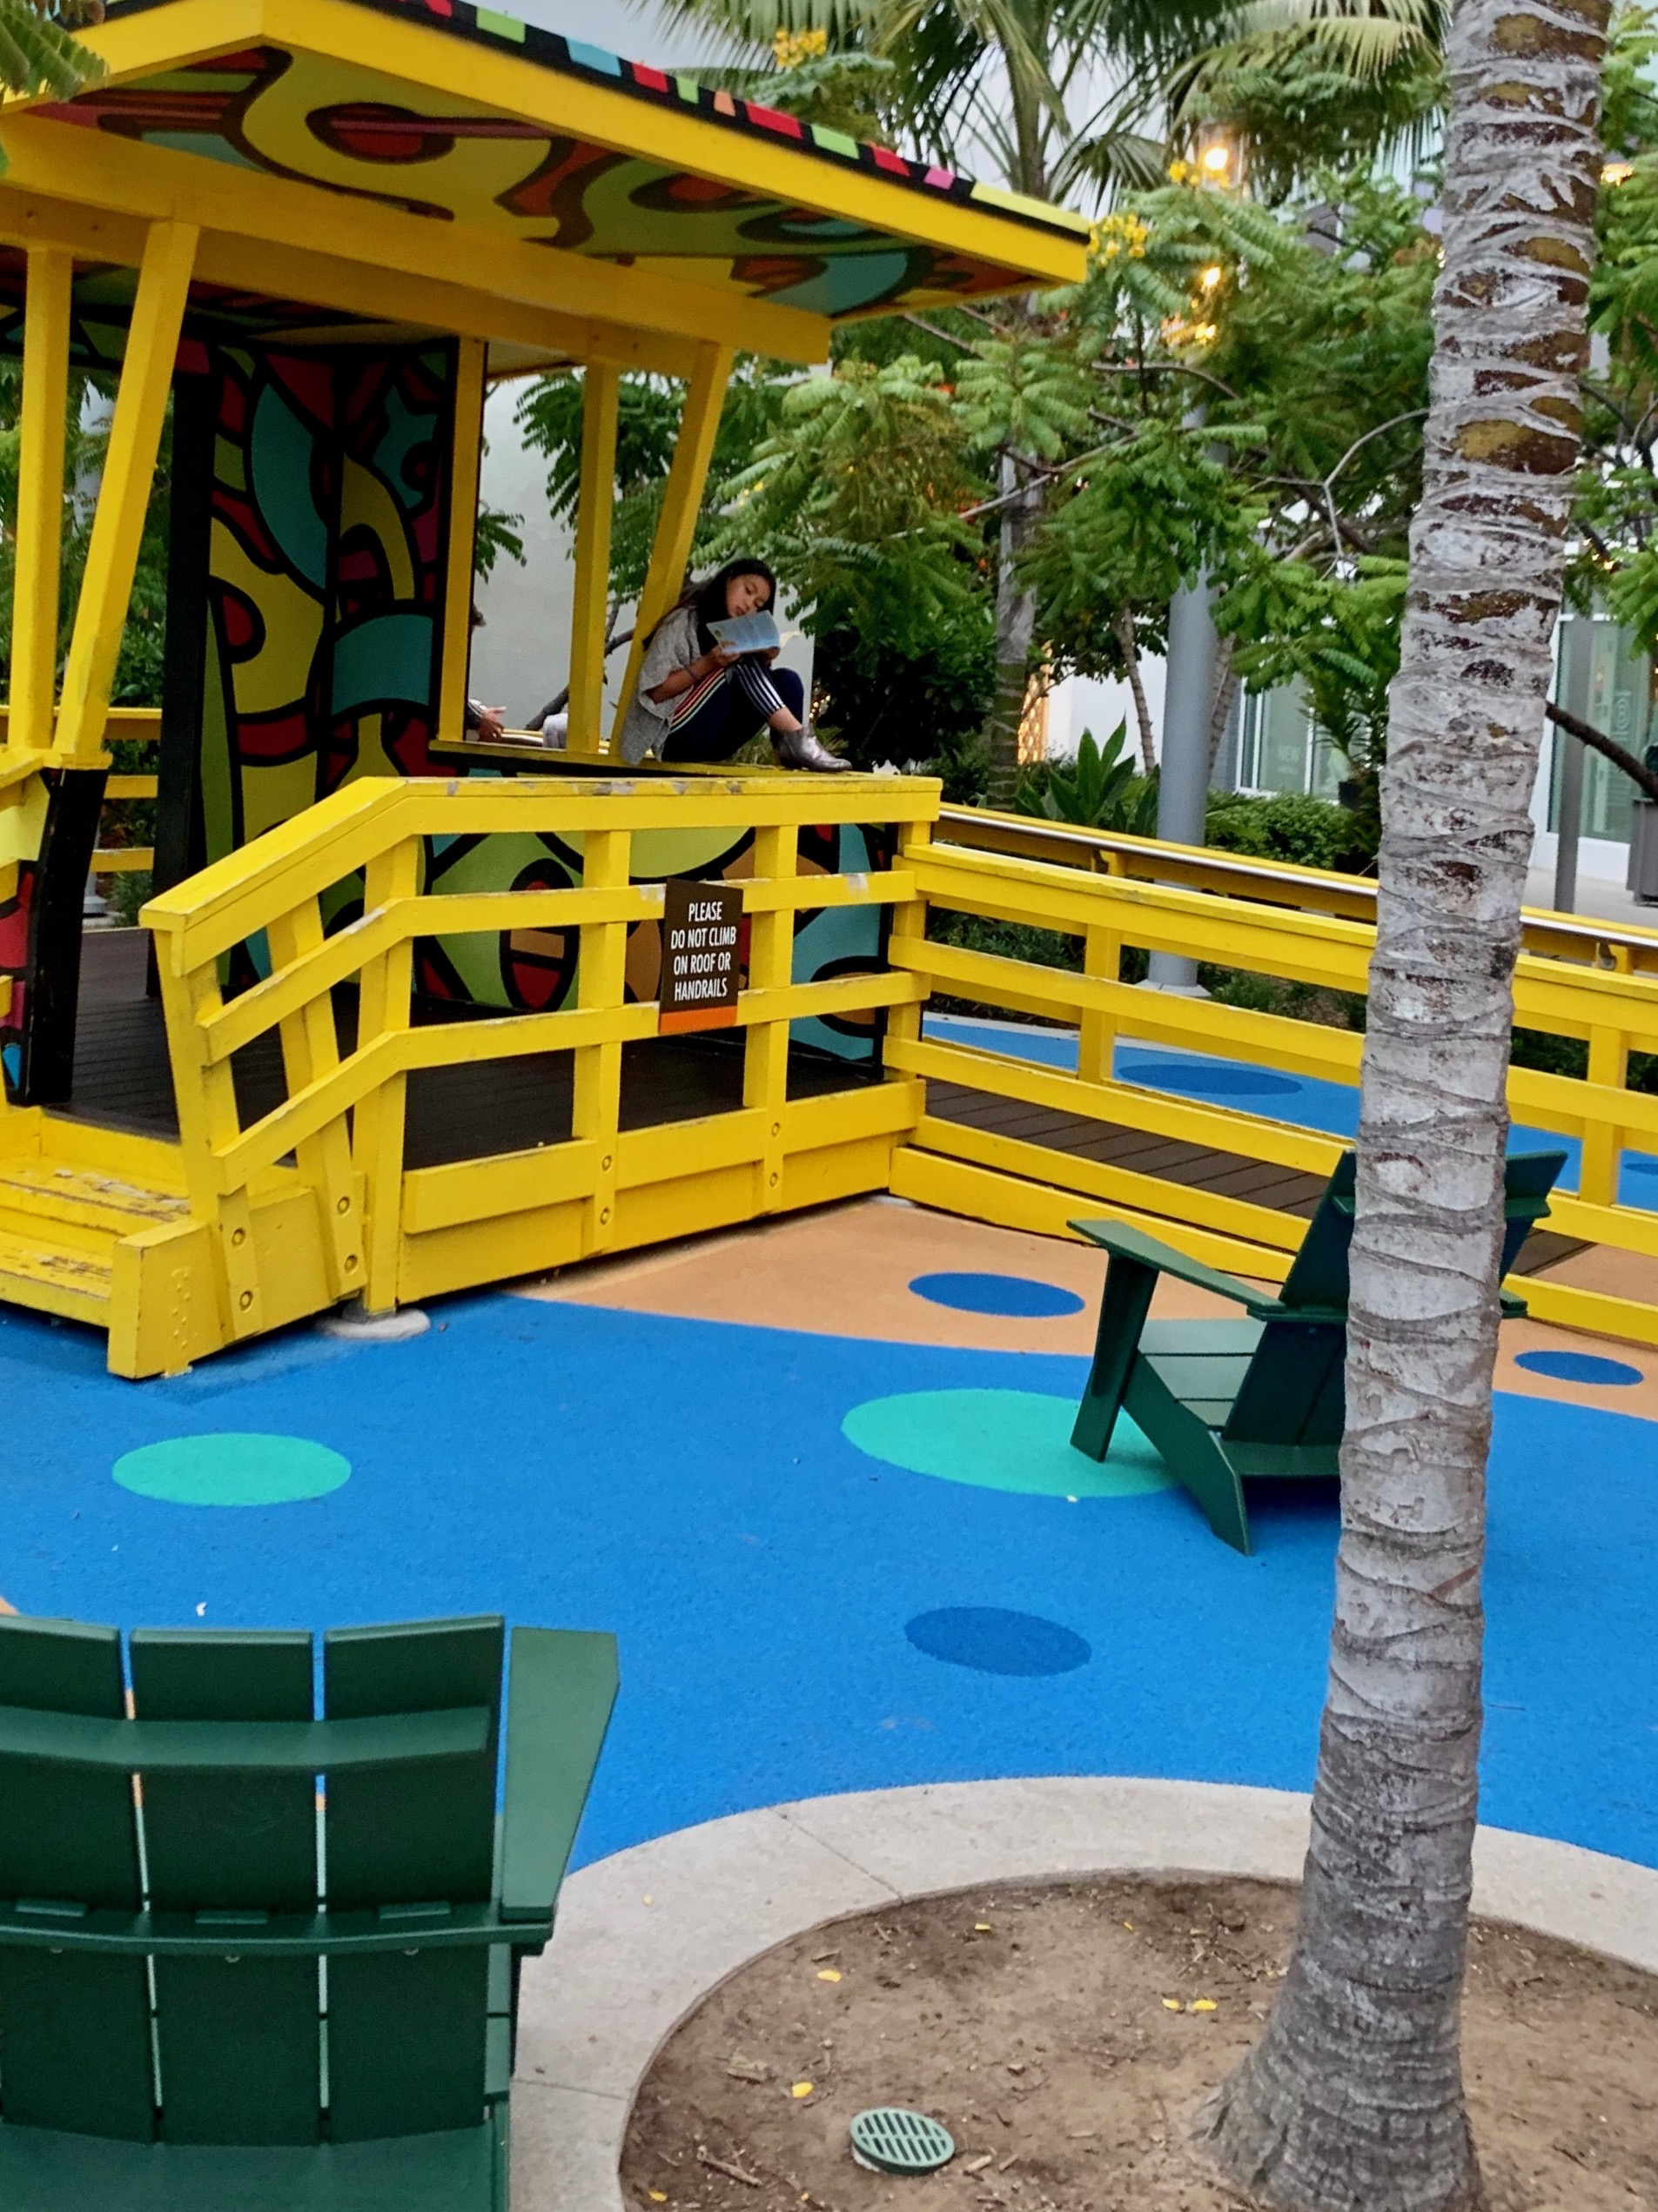 A family-friendly play area in Manhattan Beach